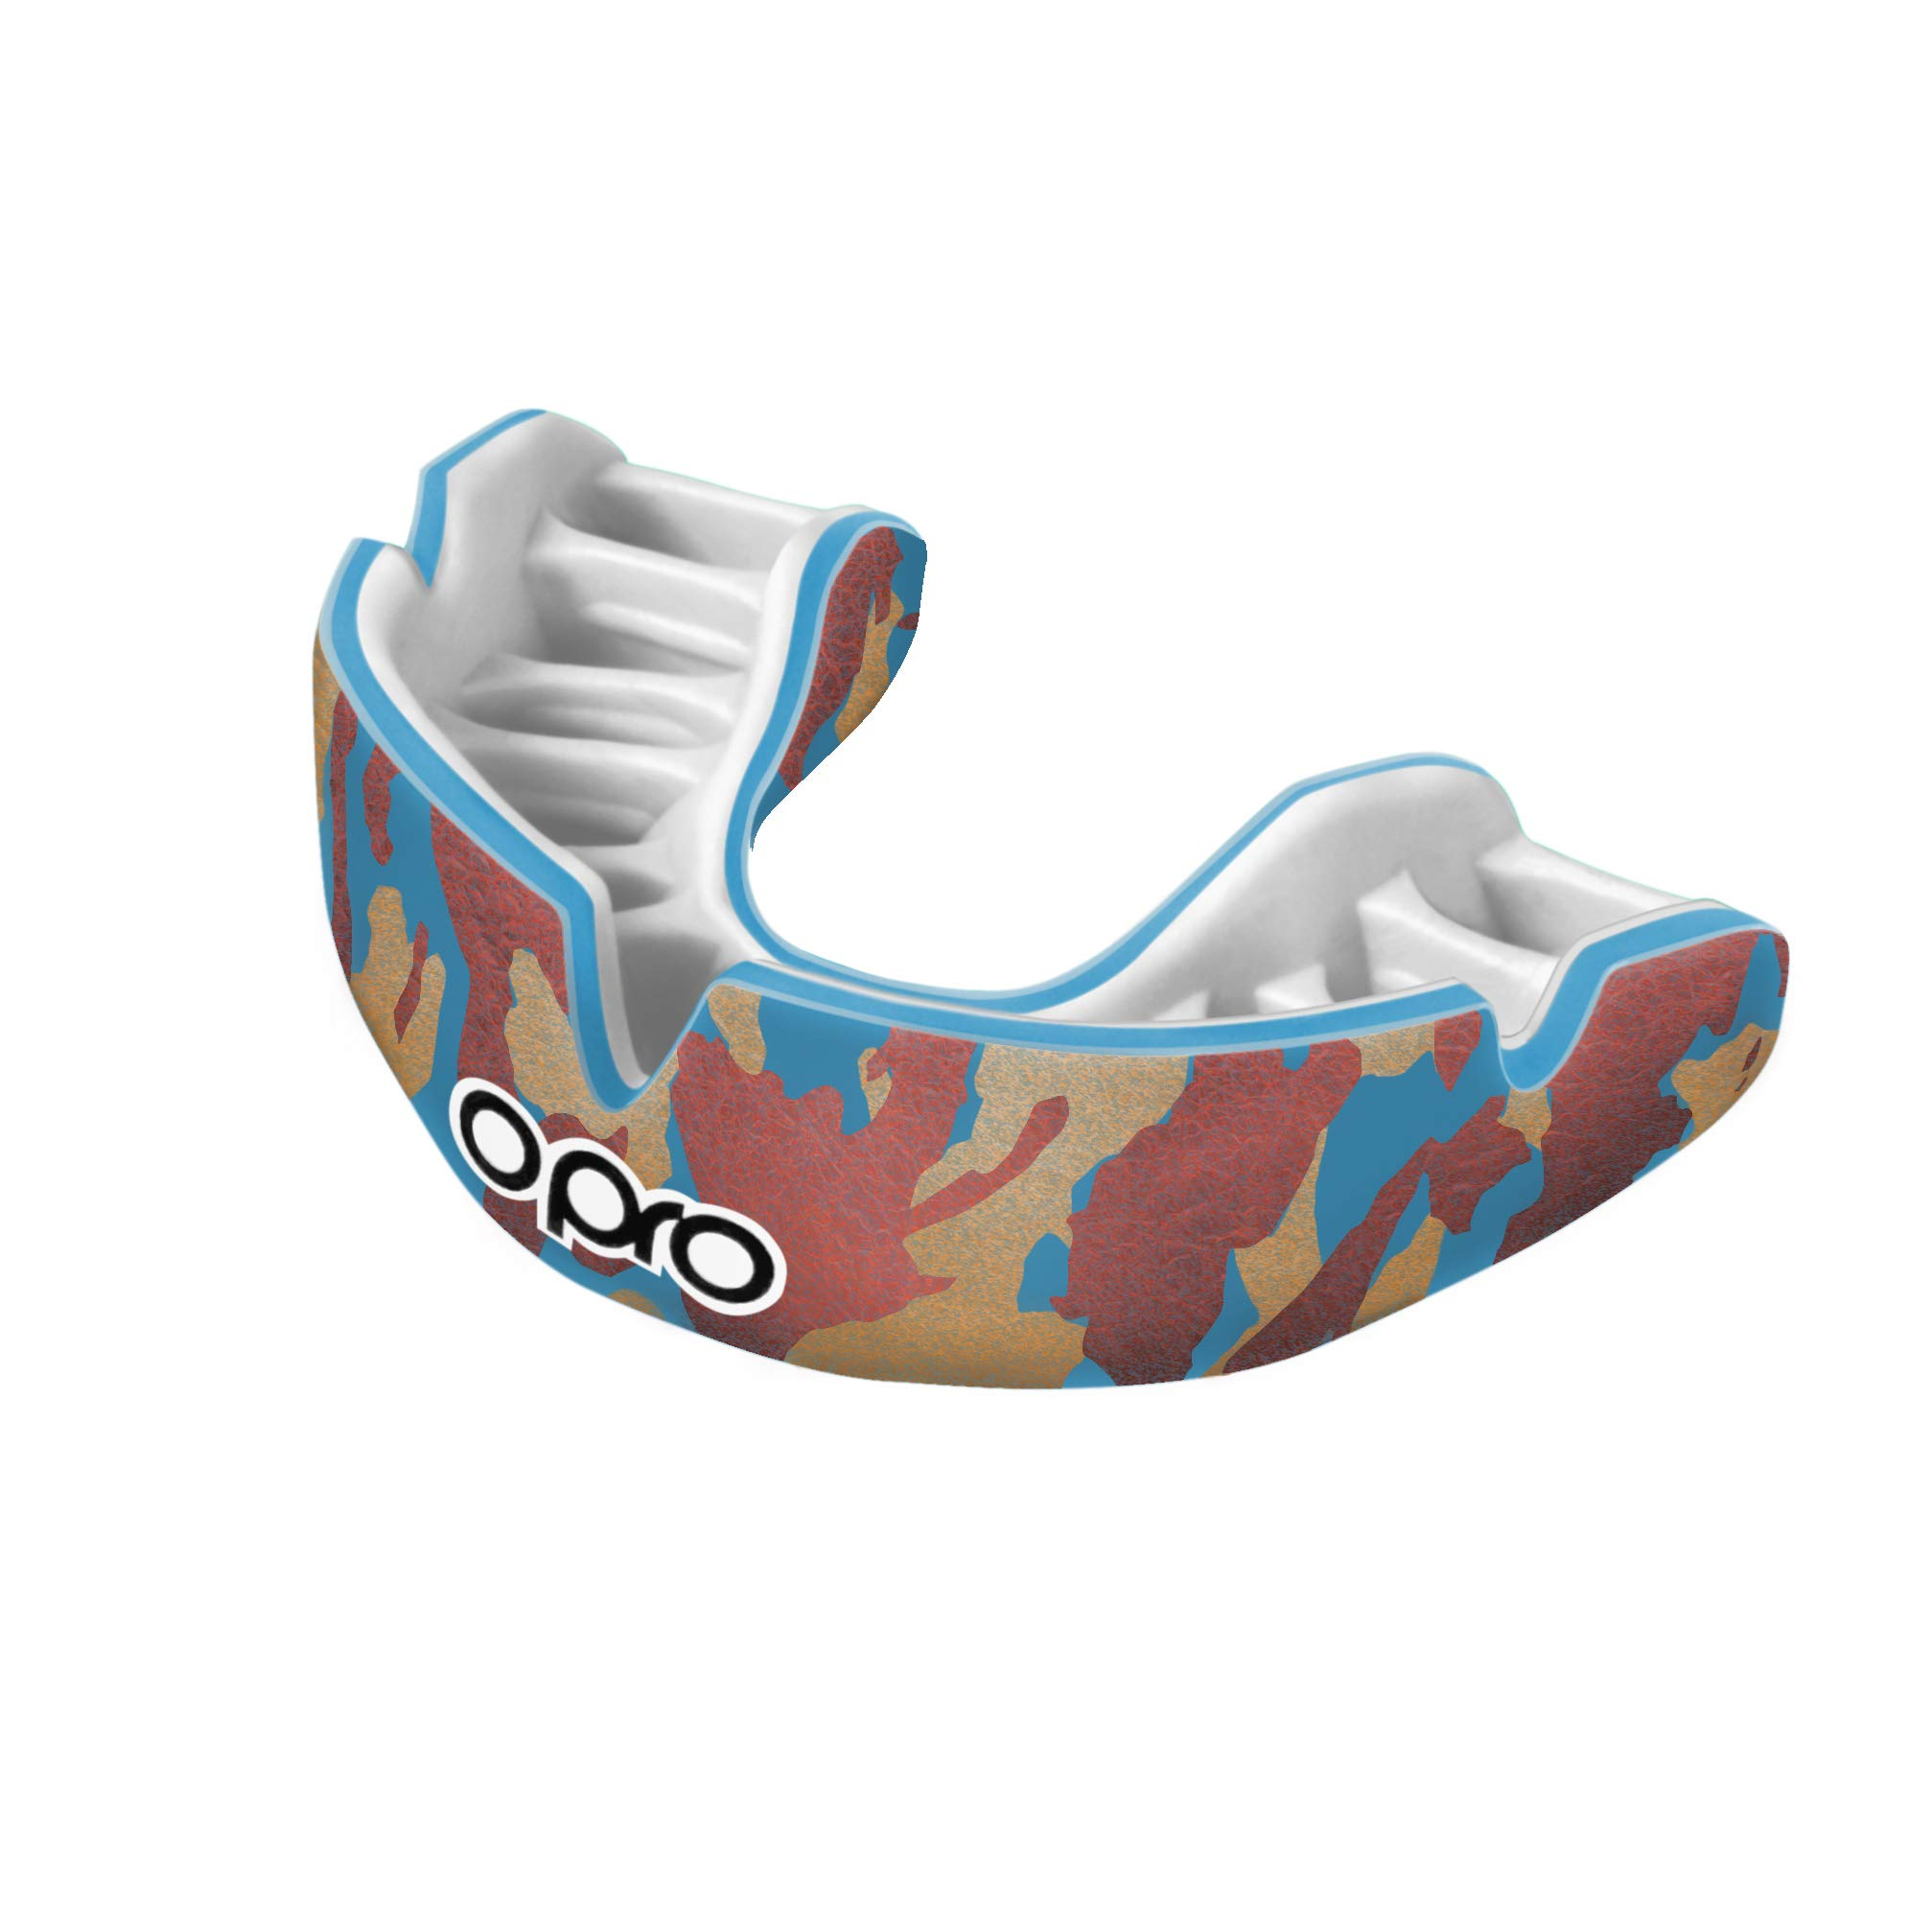 OPRO Power-Fit Mouthguard | Gum Shield for Rugby, Hockey, Wrestling, and Other Combat and Contact Sports (Adult and Junior Sizes) - 18 Month Dental Warranty (Camo - Blue/Orange/Gold, Junior)